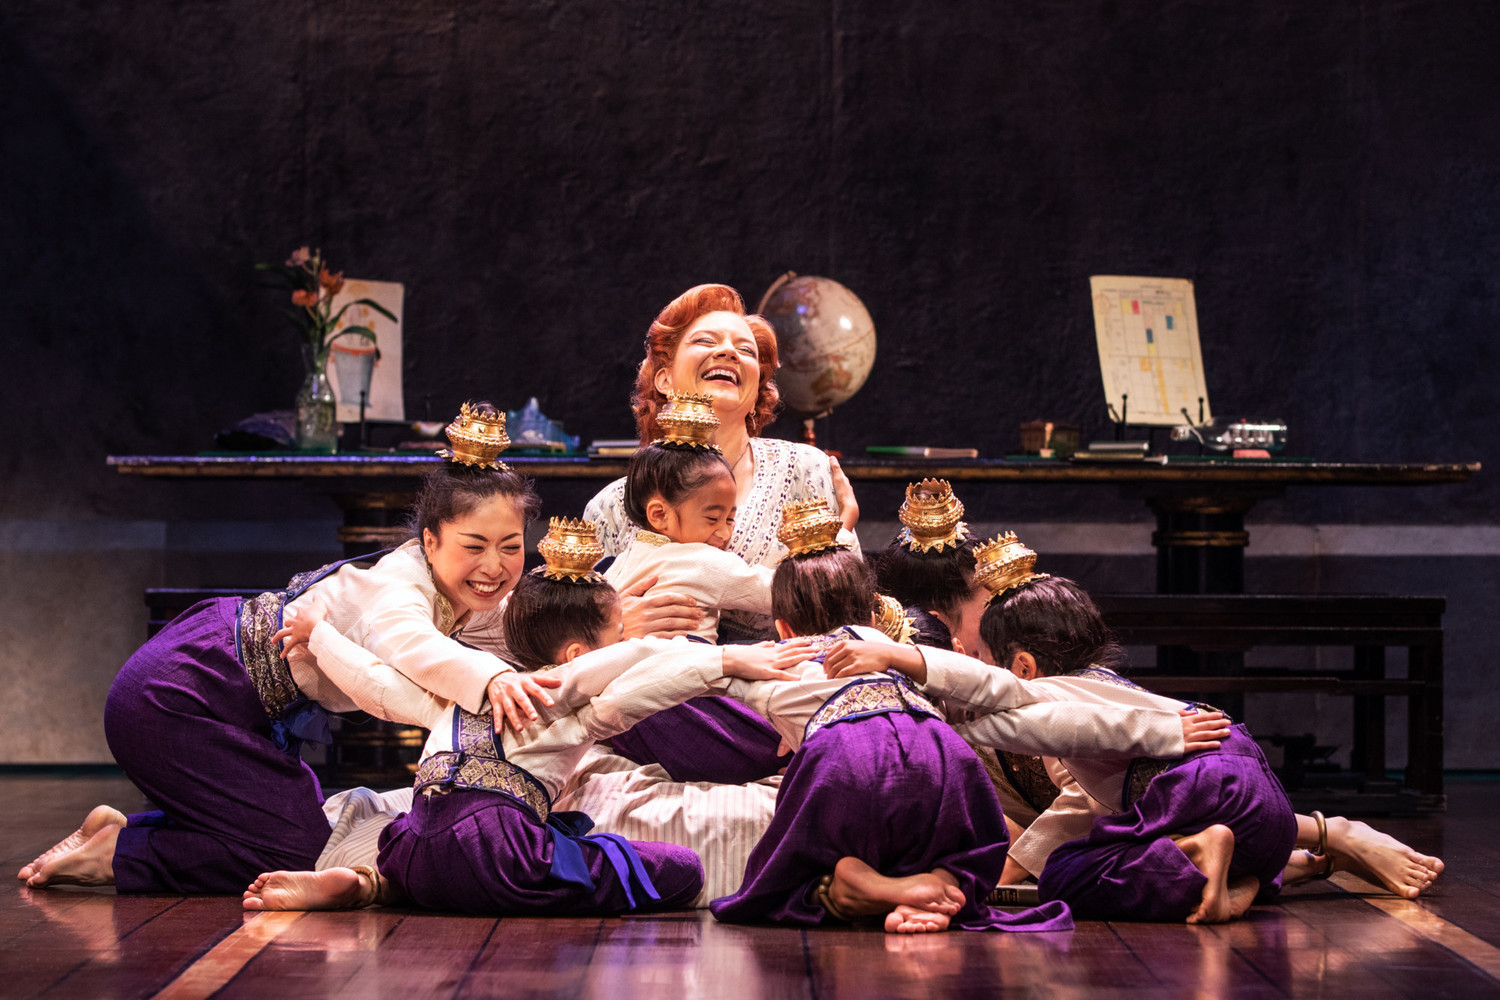 BWW Review: THE KING AND I at Lied Center For Performing Arts is Classic Musical Theatre With Timeless Message